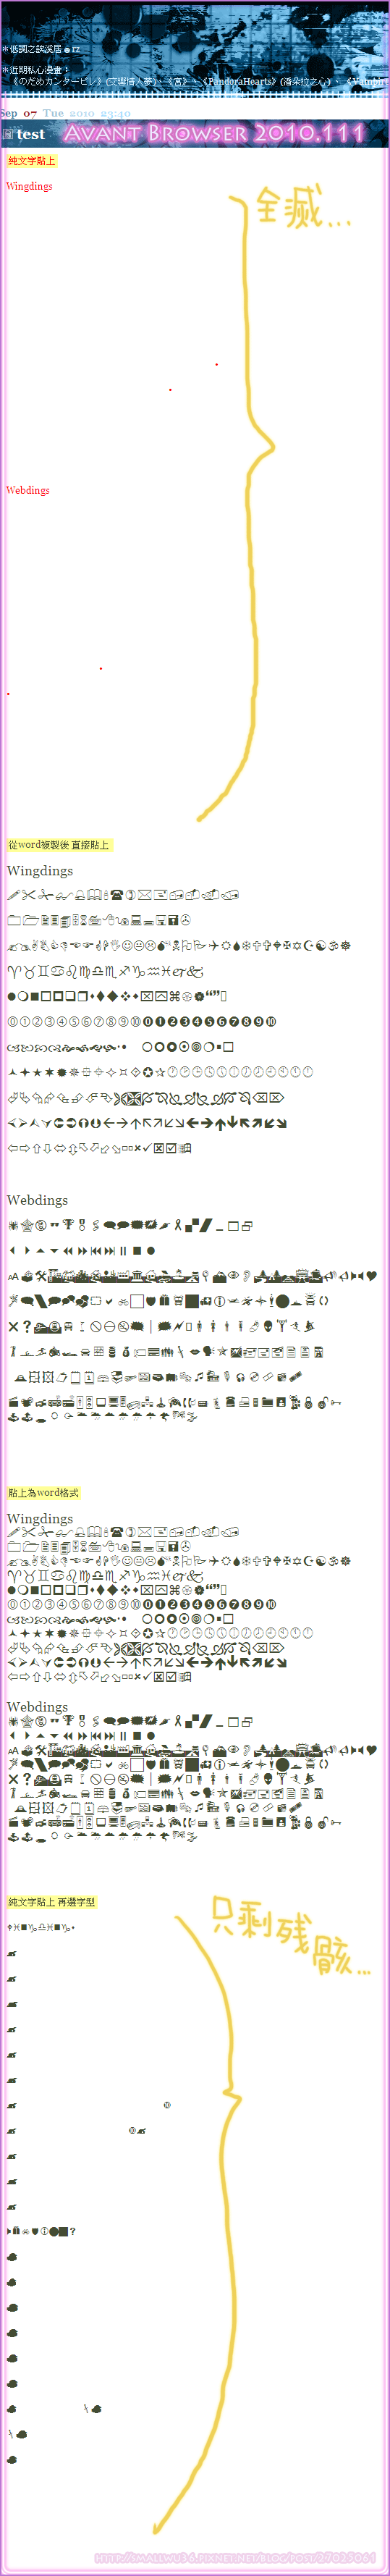 Wingdings 和 Webdings 全部的符號-IE.png